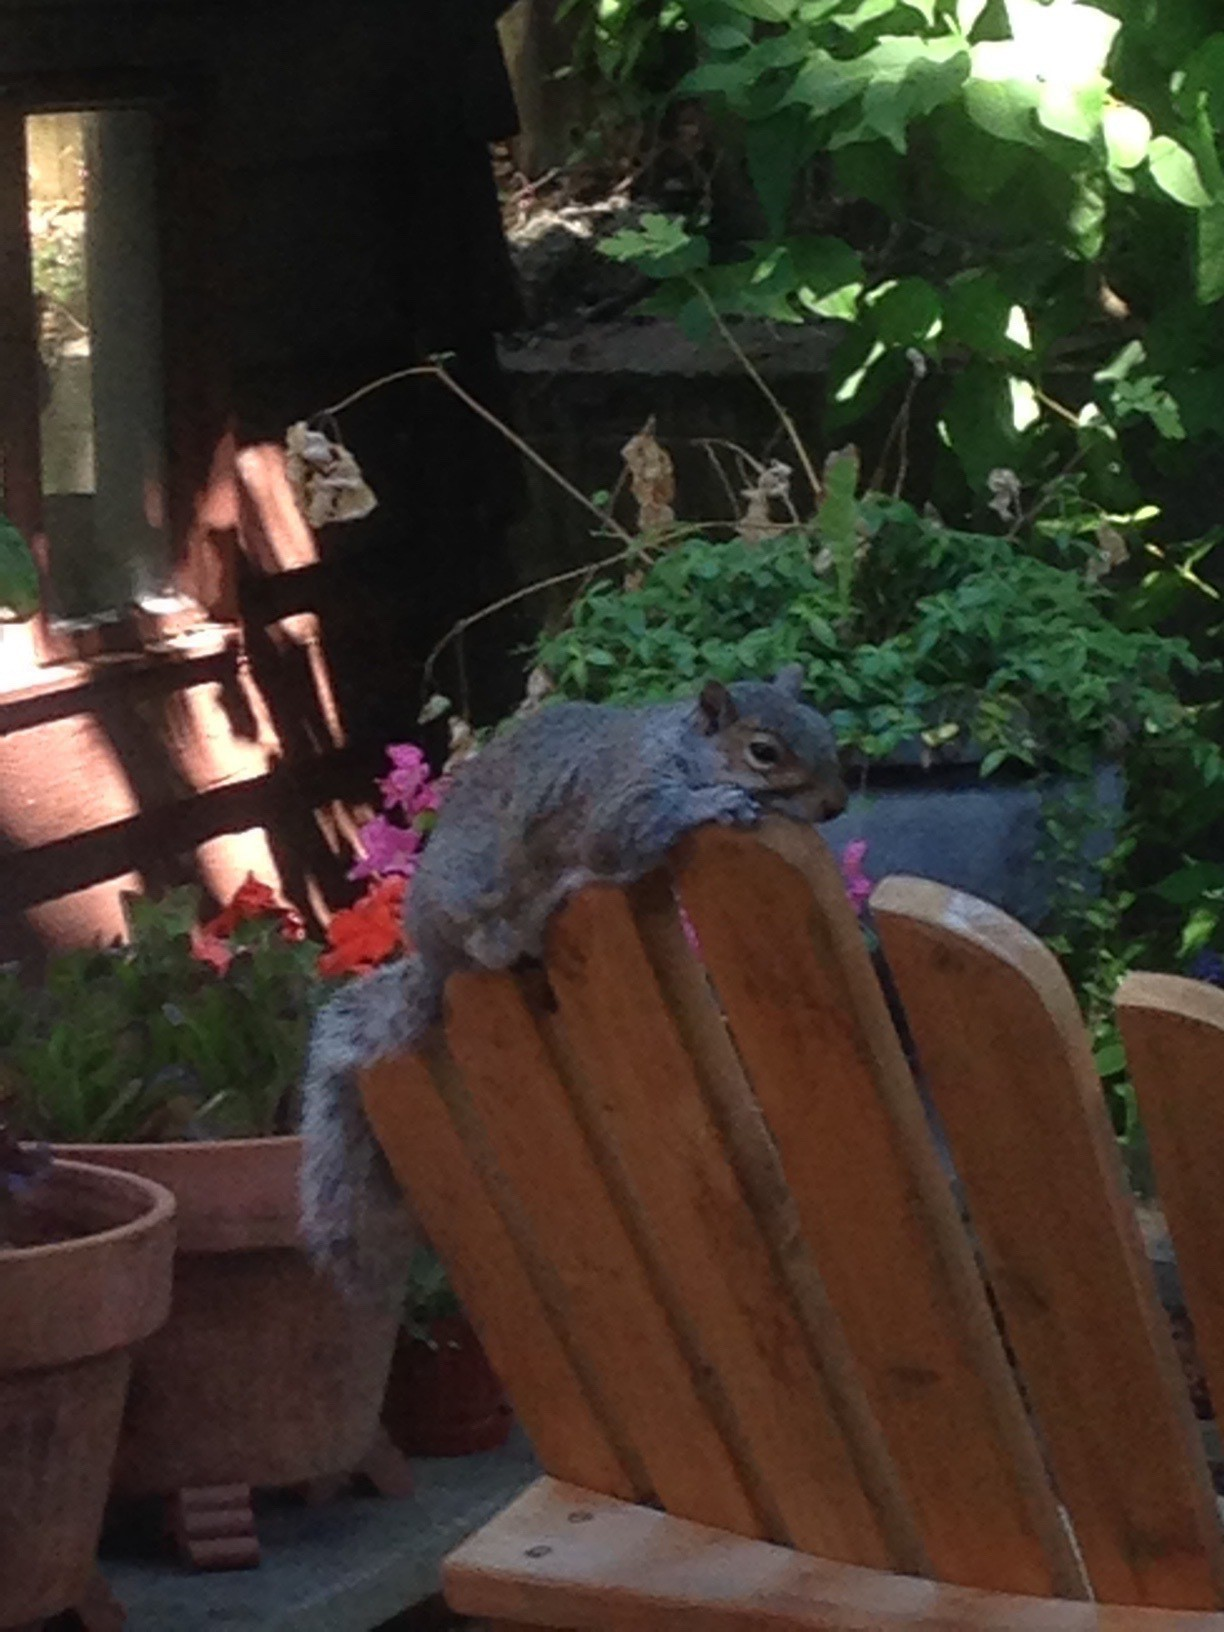 Squirrel on top of the back of an Adirondack chair.